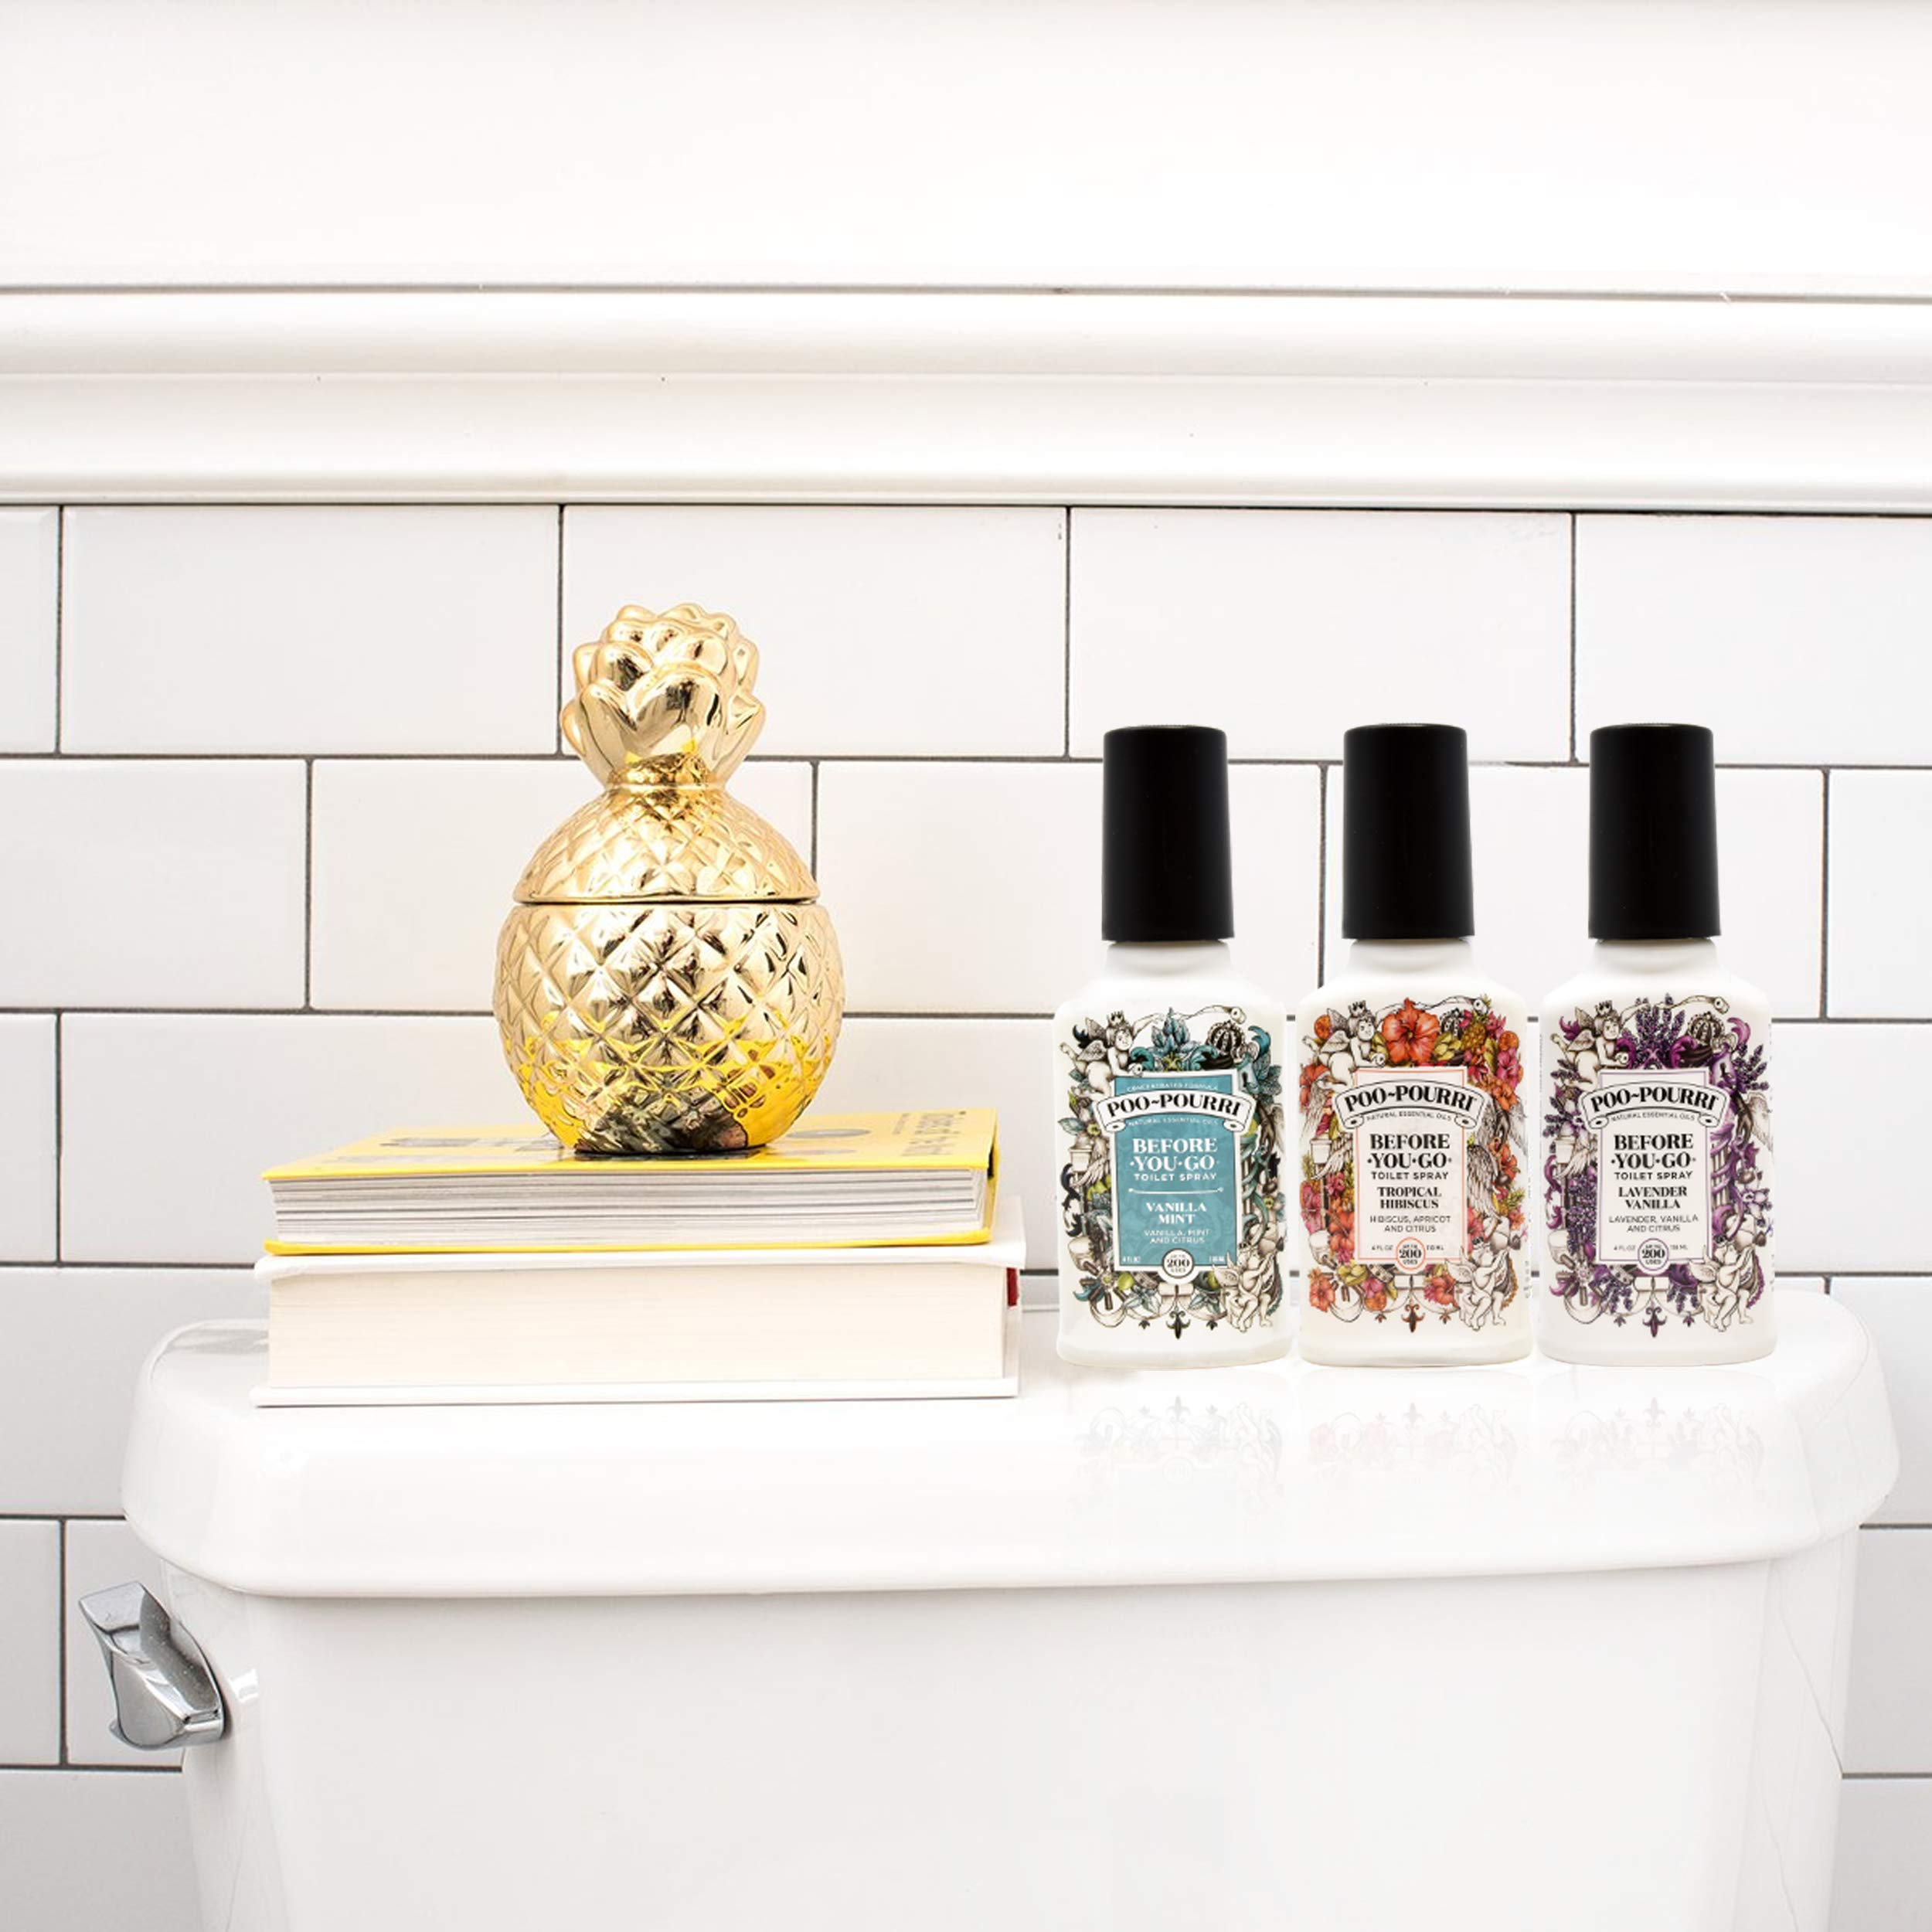 Poo-Pourri Lavender Vanilla, Tropical Hibiscus and Vanilla Mint 4-Ounce Set by Poo-Pourri (Image #2)